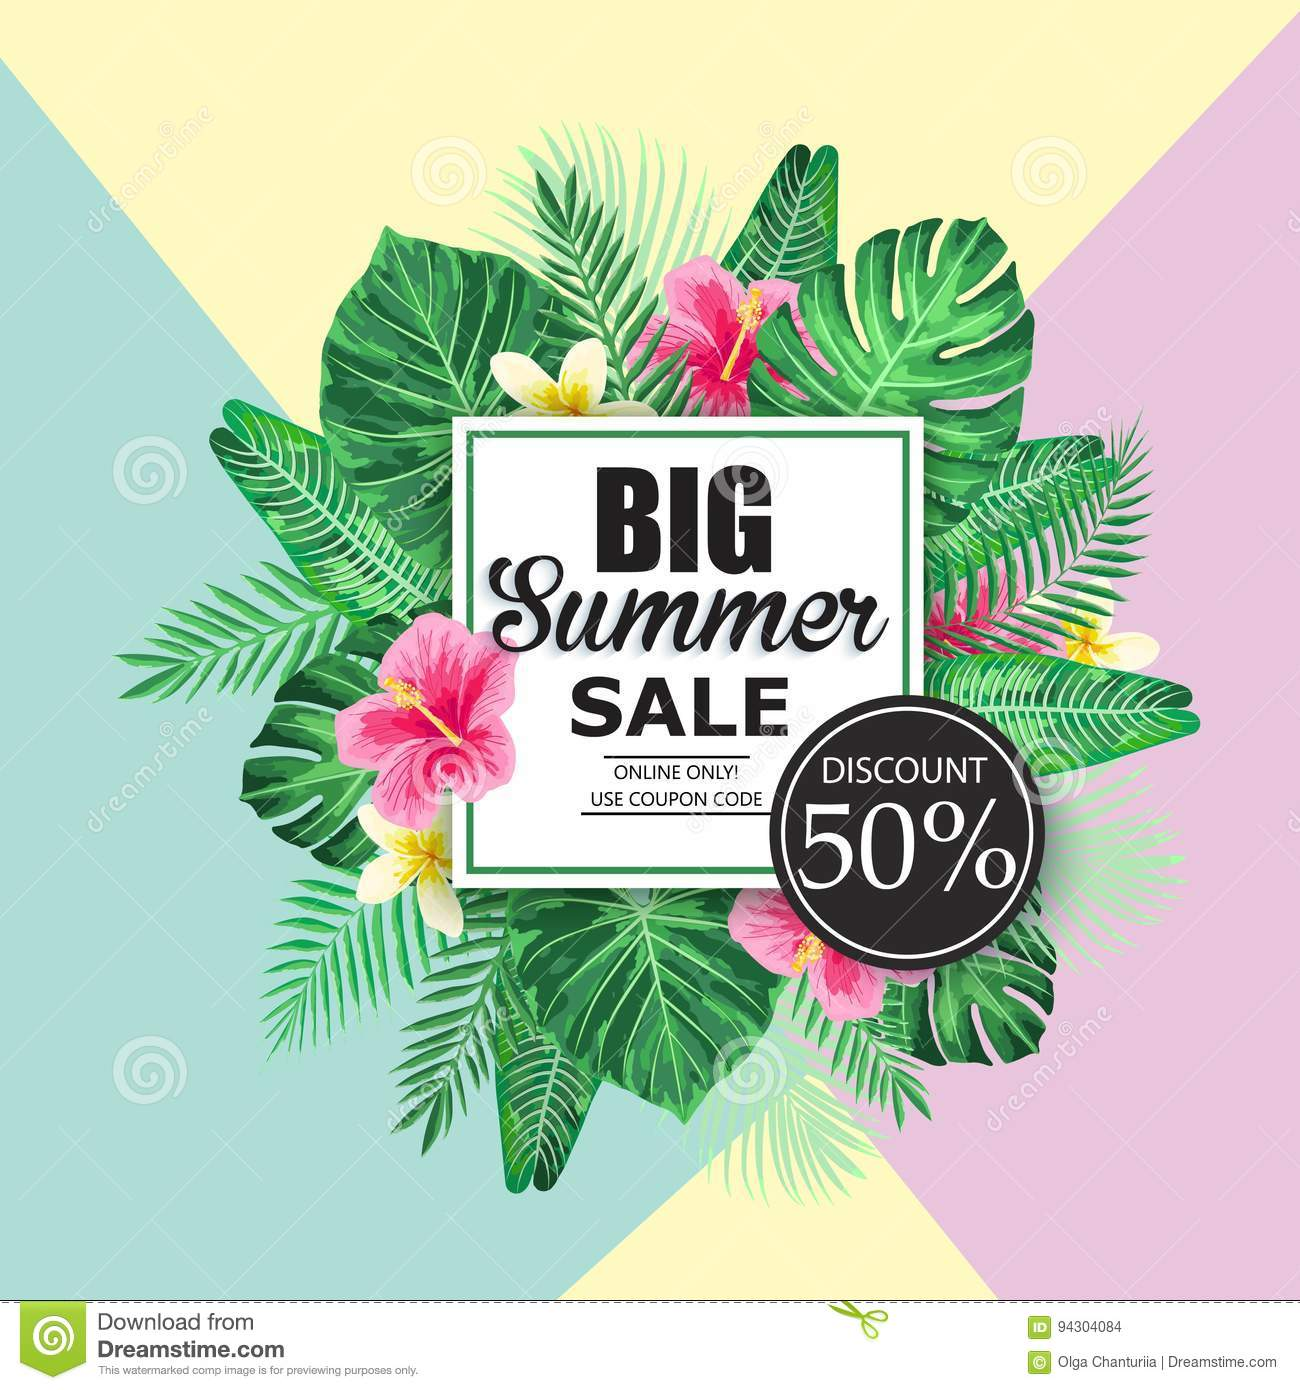 Summer sale exotic and tropic background design stock illustration summer sale exotic and tropic background design izmirmasajfo